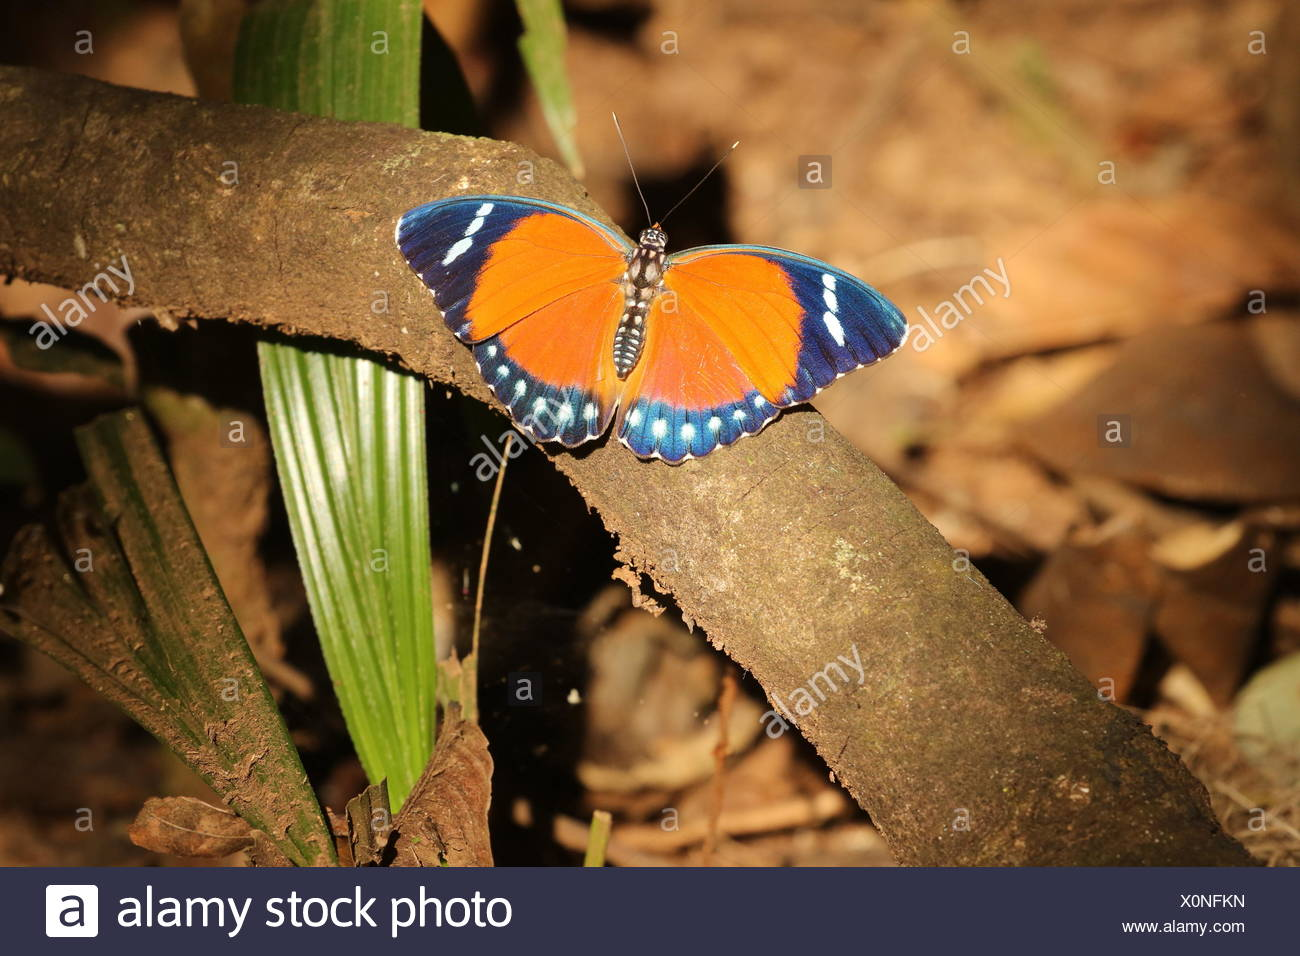 A Euphaedra ruspina, Nymphalidae, rests on a branch. - Stock Image